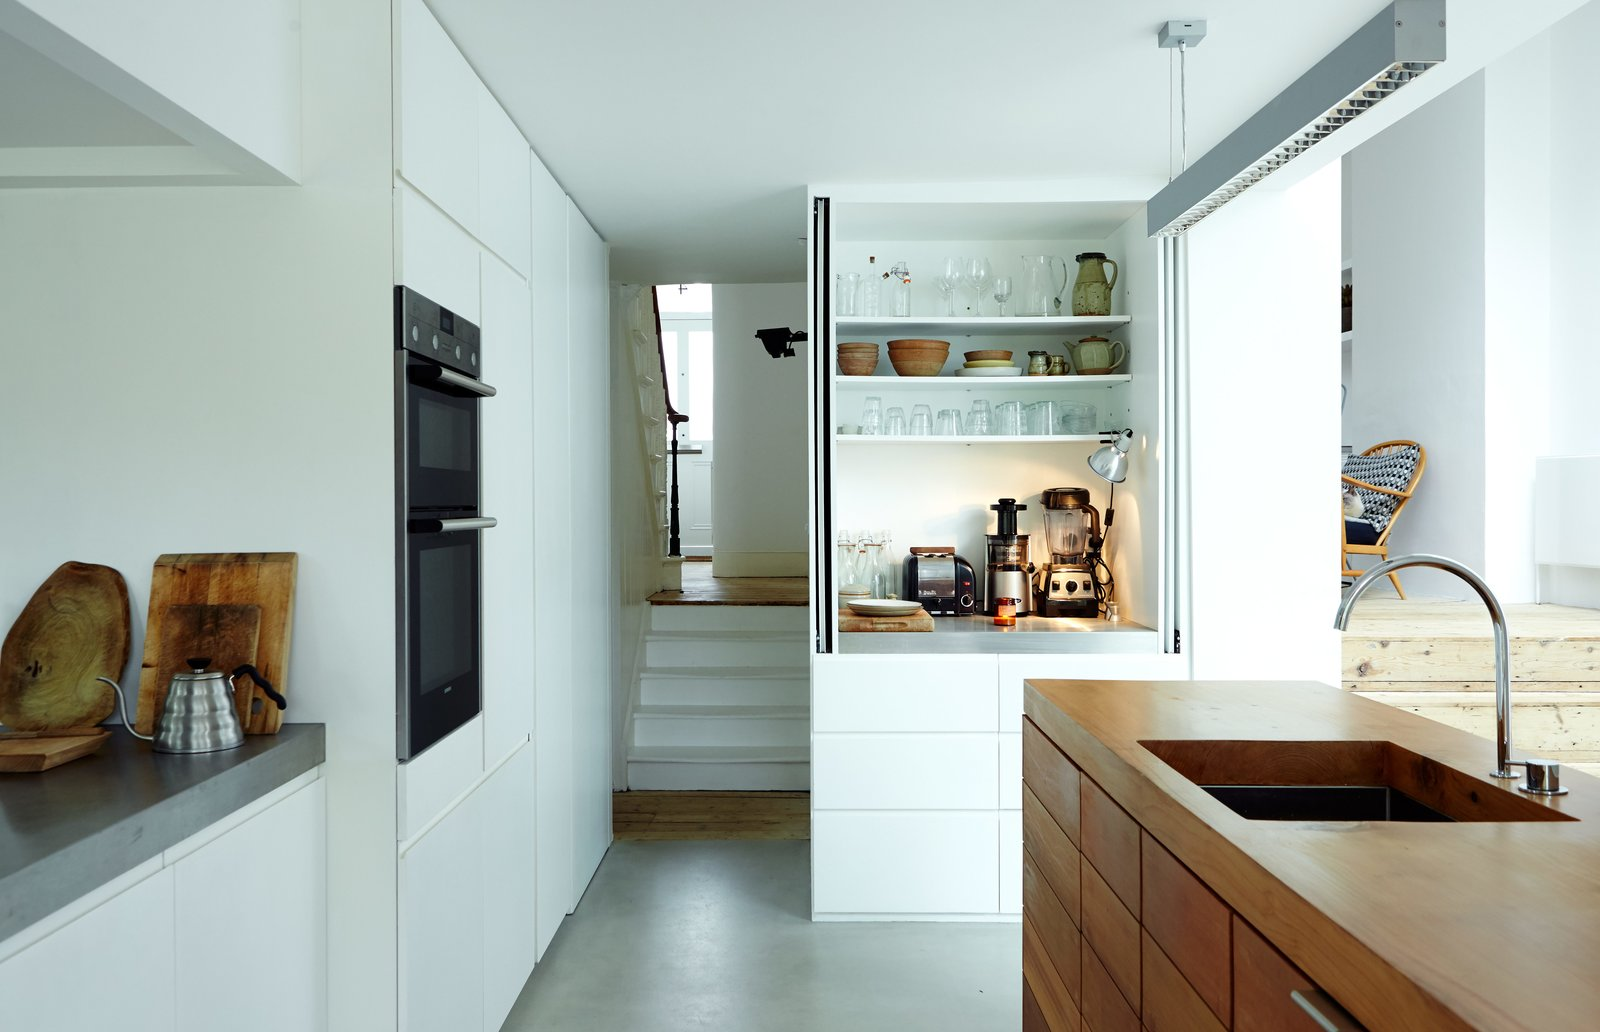 When their house was in need of a pick-me-up, a London couple turned to the designer of their favorite coffee shop for an industrial-strength renovation.  A Lebanese cedar island and stainless-steel countertops provide ample work space—and a place to display treasured items, such as the Buono V60 drip kettle by Hario. The island features a Franke sink with a Vola faucet. The oven is by Siemens and white MDF cabinets stow tools. Tagged: Kitchen, Wood Counter, White Cabinet, and Concrete Floor.  Photo 3 of 6 in Our Editor Sets the Kitchen and Bath Benchmark